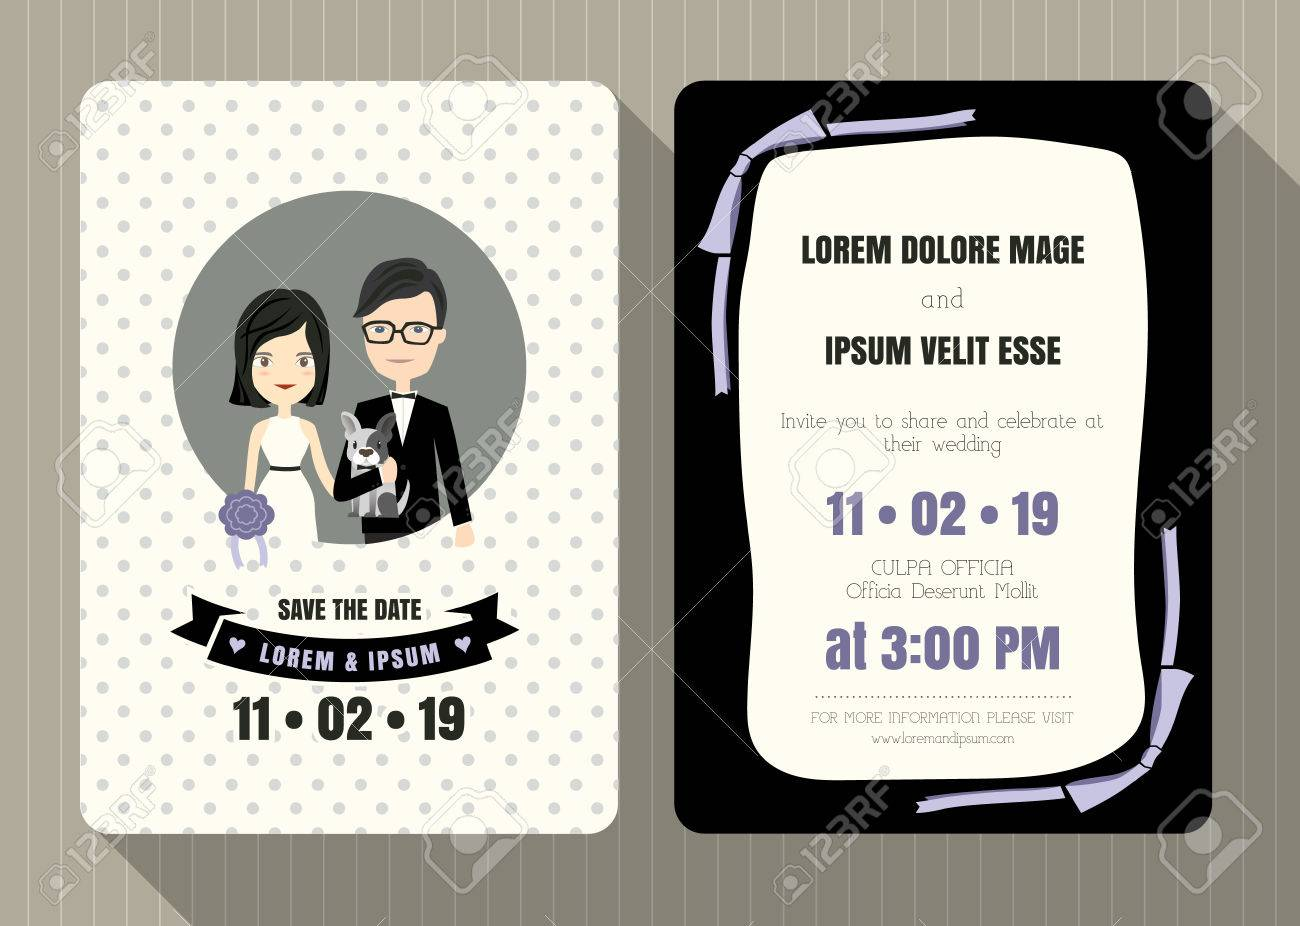 Wedding Invitation Card Template With Cute Groom And Bride Cartoon ...